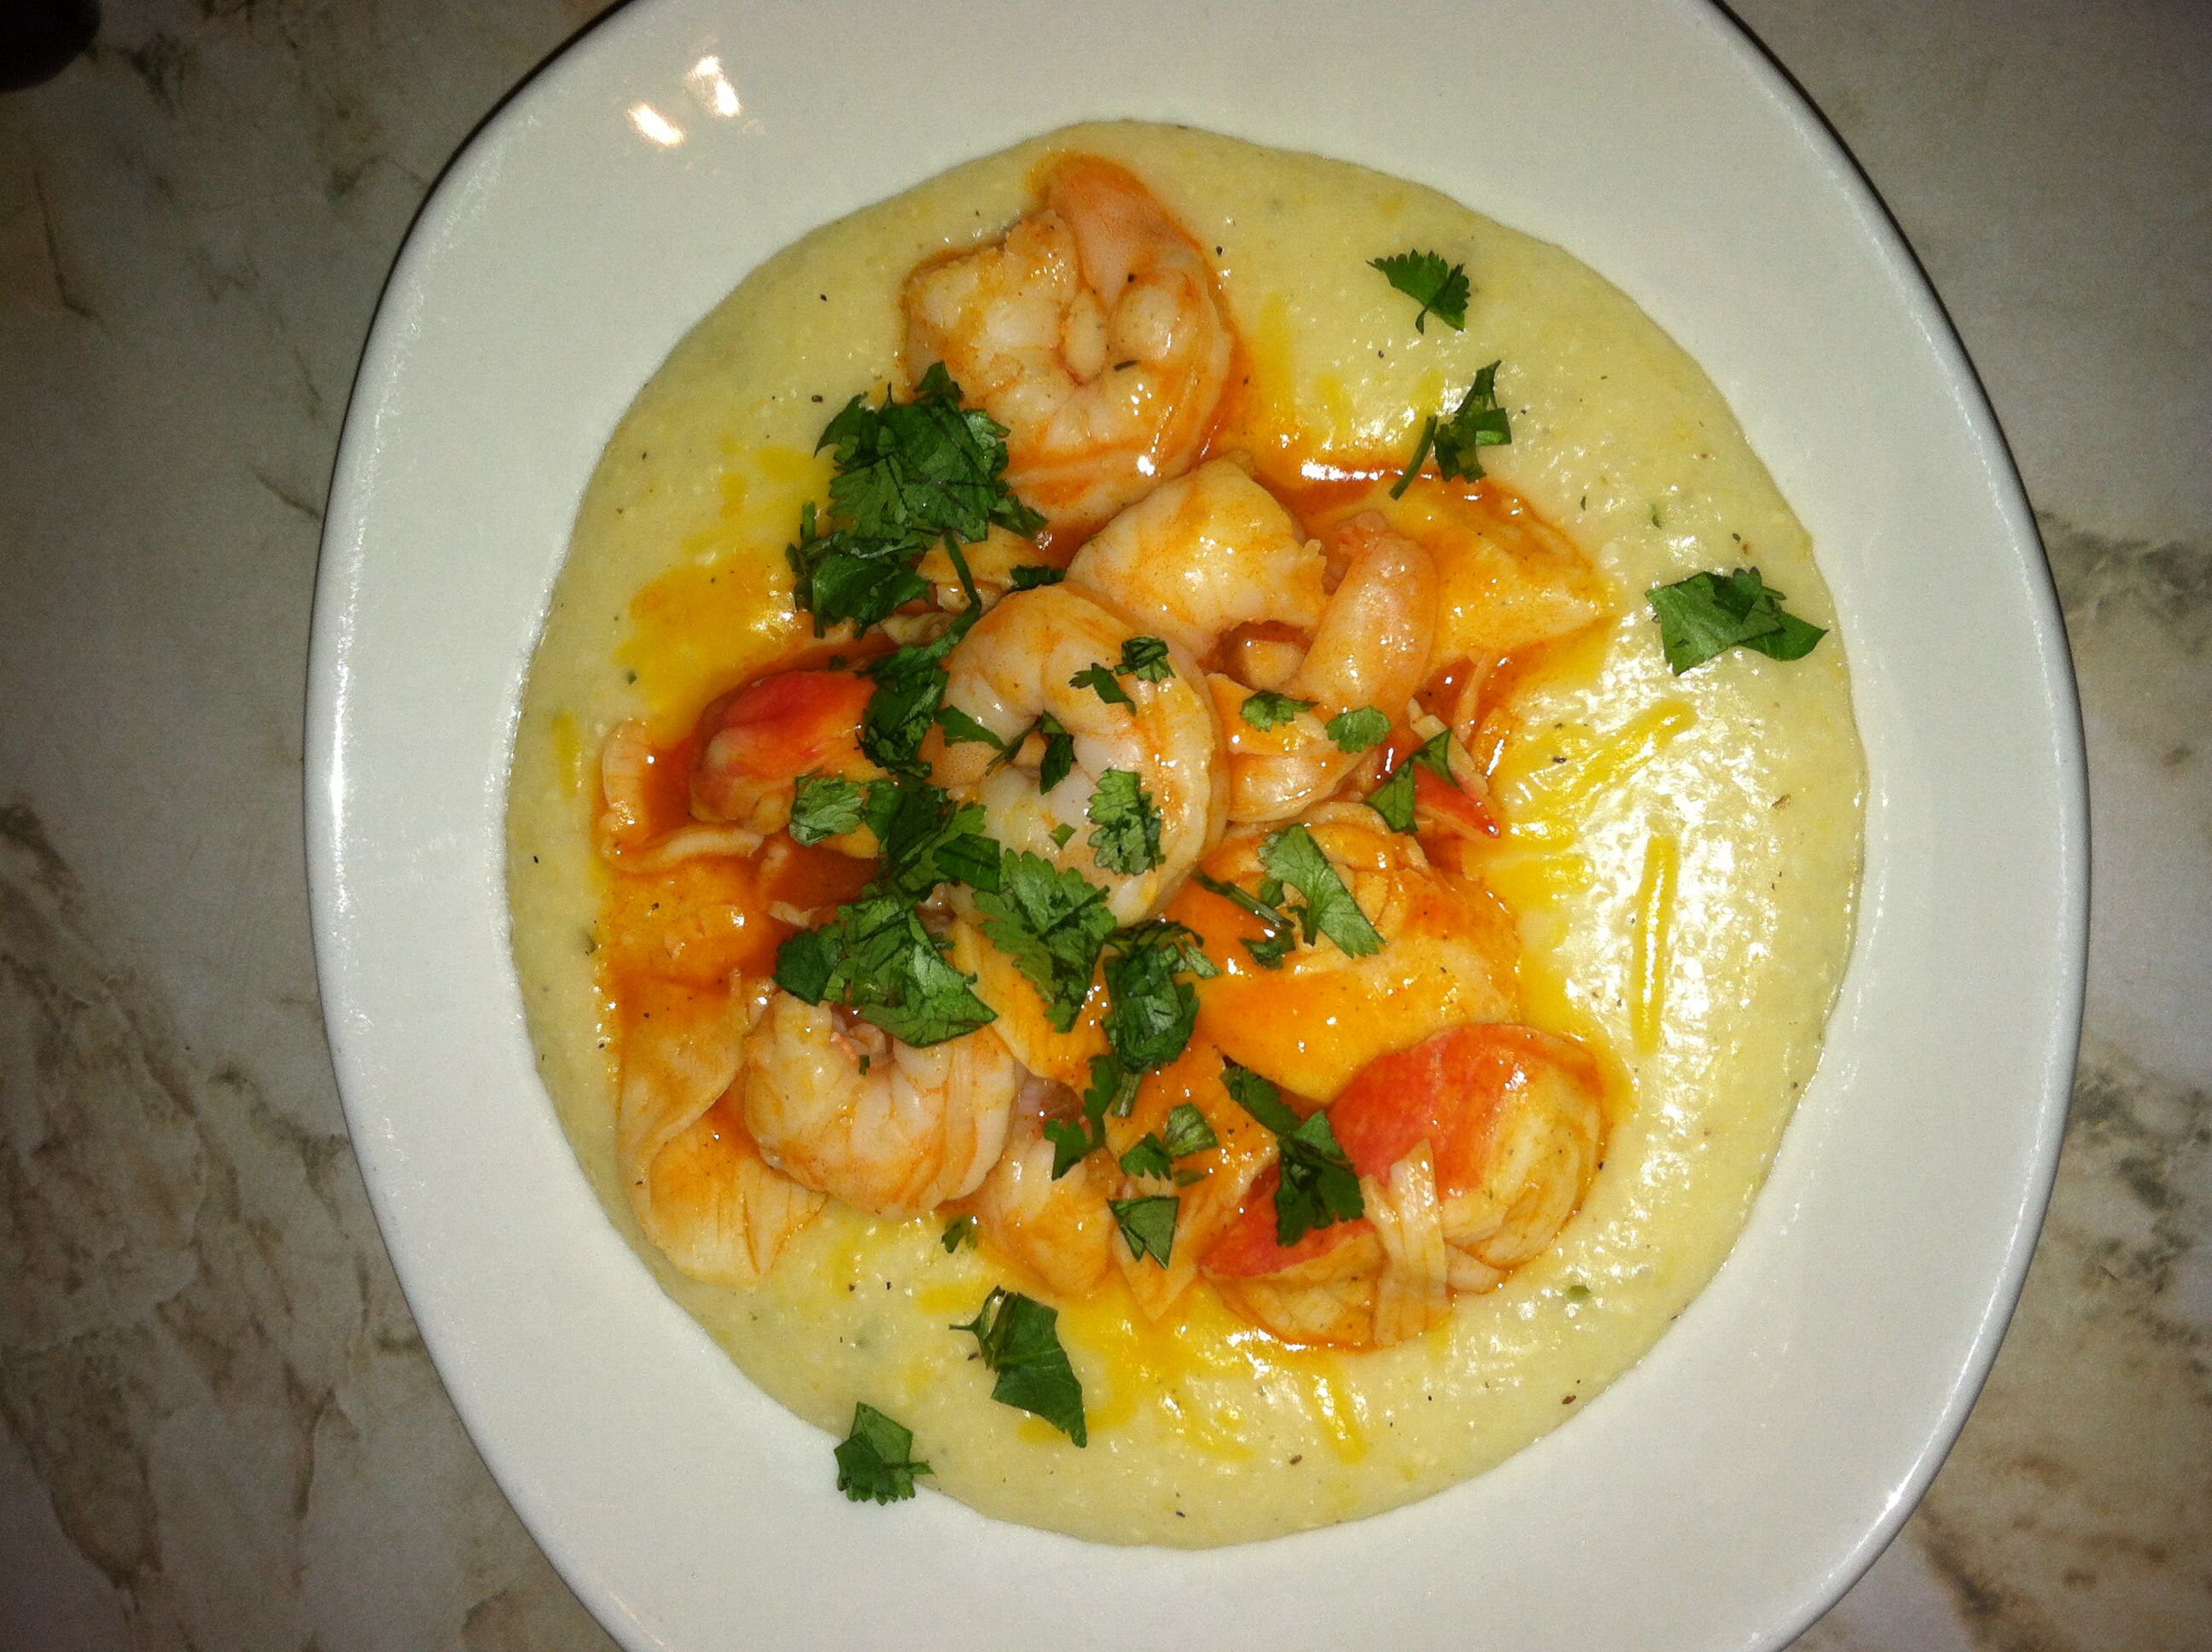 grits shrimp and grits cakes simple shrimp and grits spicy rock shrimp ...